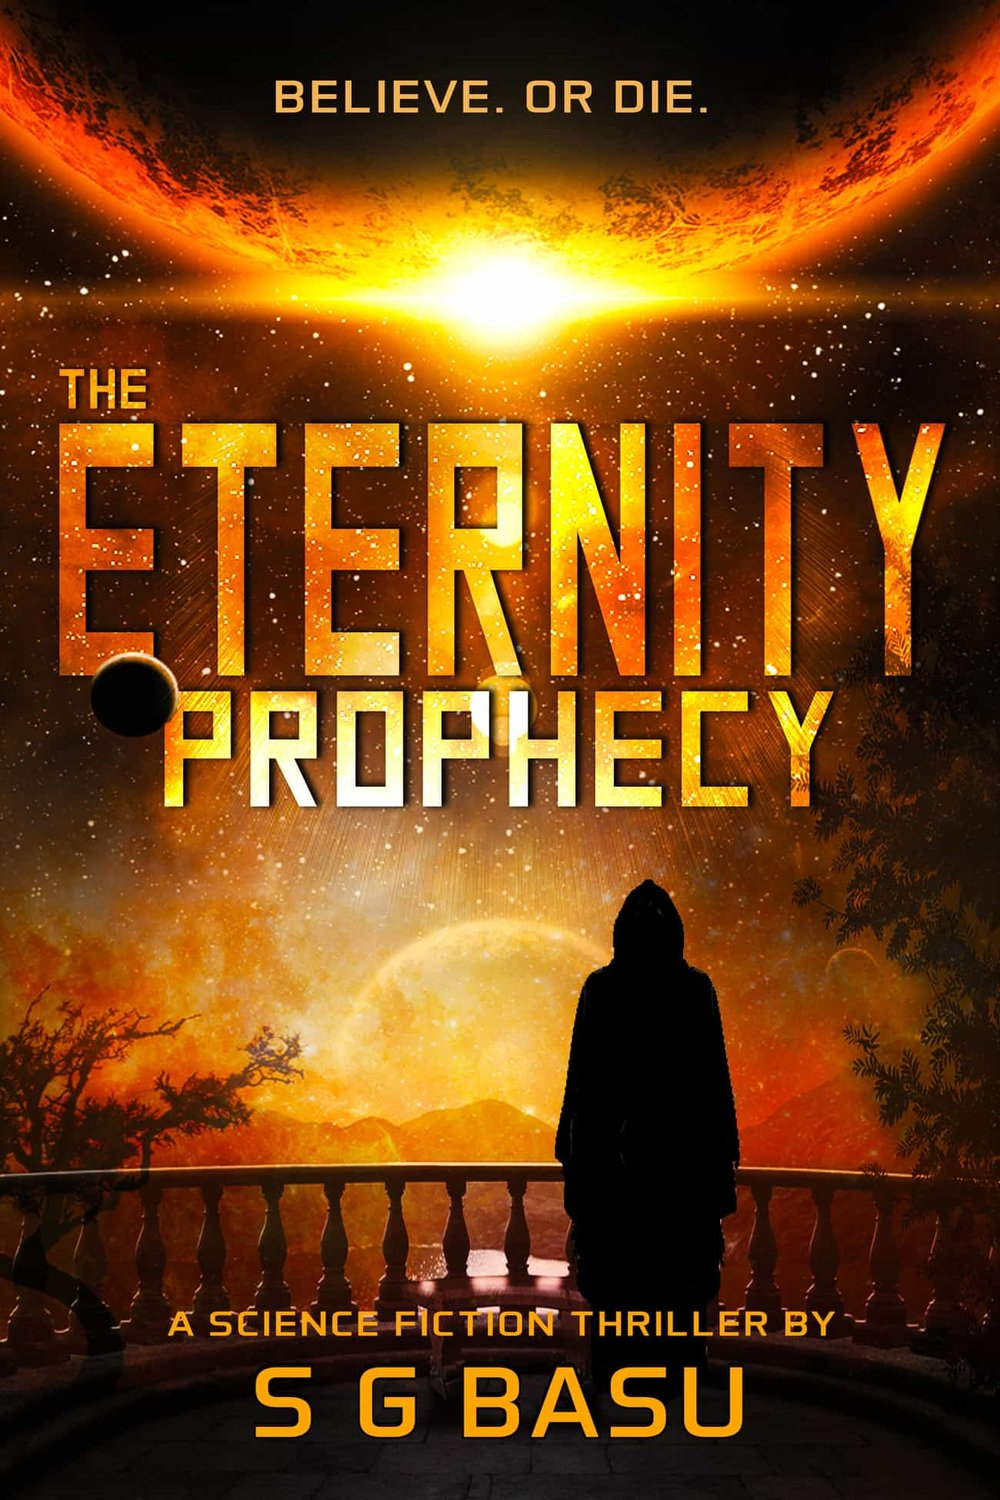 The Eternity Prophecy - In the Veloressian Empire of the twenty-three stars, prophecies are sacred and absolute. Until the day Oracle Prime Leon Courtee challenges the Empire's most sacrosanct divination--the Eternity Prophecy. The next morning he disappears, along with an inconceivable truth that could cripple the Empire.As murmurs of a conspiracy simmer underneath a facade of peace, the regime prepares to strike back. Anything to keep the dissenters quiet. Or better yet, dead. The Empire is ready to turn innocents into pawns in a game of treachery and deceit--a sacrifice deemed necessary to keep peace across the galaxy.Will truth stand a chance against the all-powerful Empire?In this unputdownable tour de force, disparate lives--a young mother fleeing a horrific past, a covert operative trying to resuscitate his career, a self-taught hacker fixated on revenge, an assassin seeking redemption--crisscross and careen unwittingly toward a stunning conclusion.